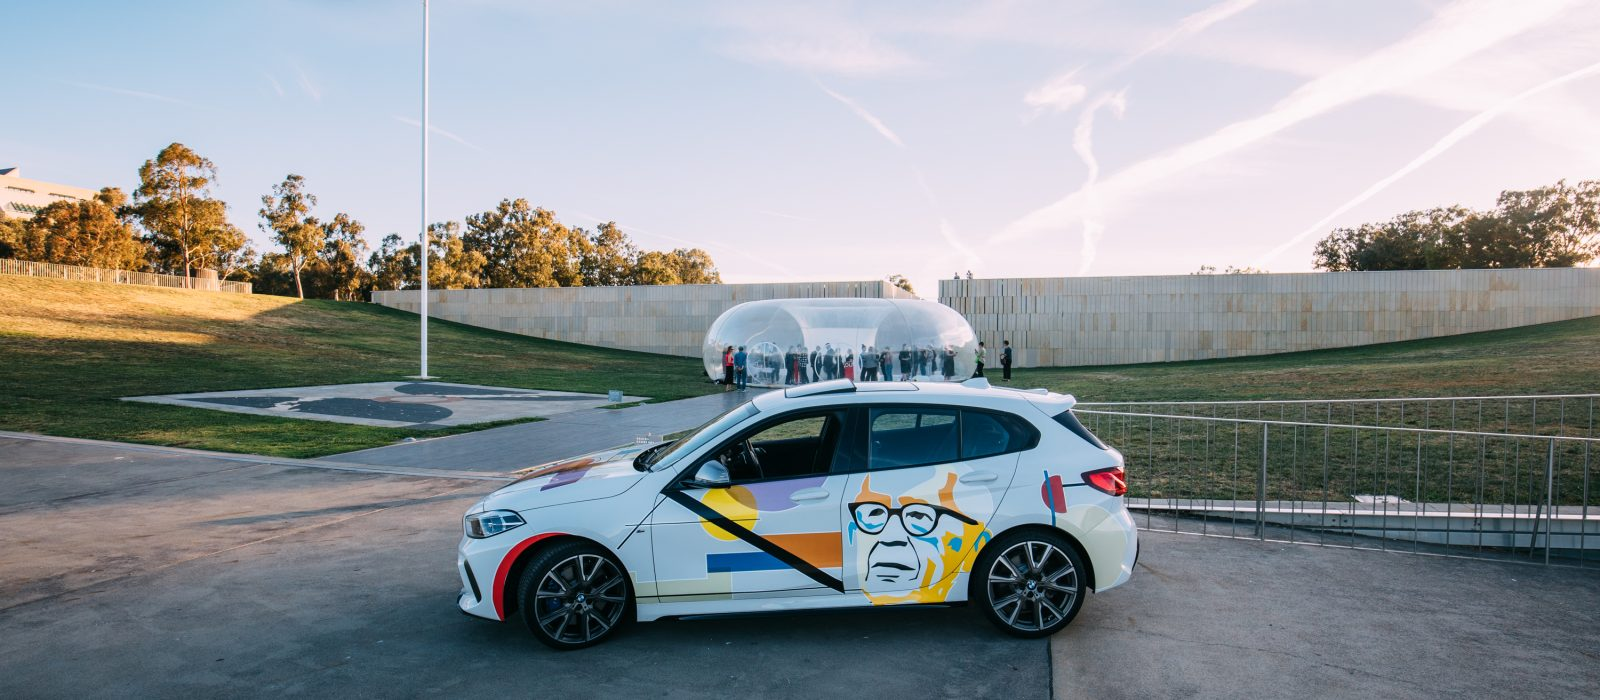 2019 car wrap winning design by University of Canberra student Kye Jones on display during the 2019 festival. BMW Series 1 courtesy of Rolfe Classic BMW, car wrap by ROJO Customs, installation MEDUSA by Plastique Fantastique. Photo: 5 Foot Photography